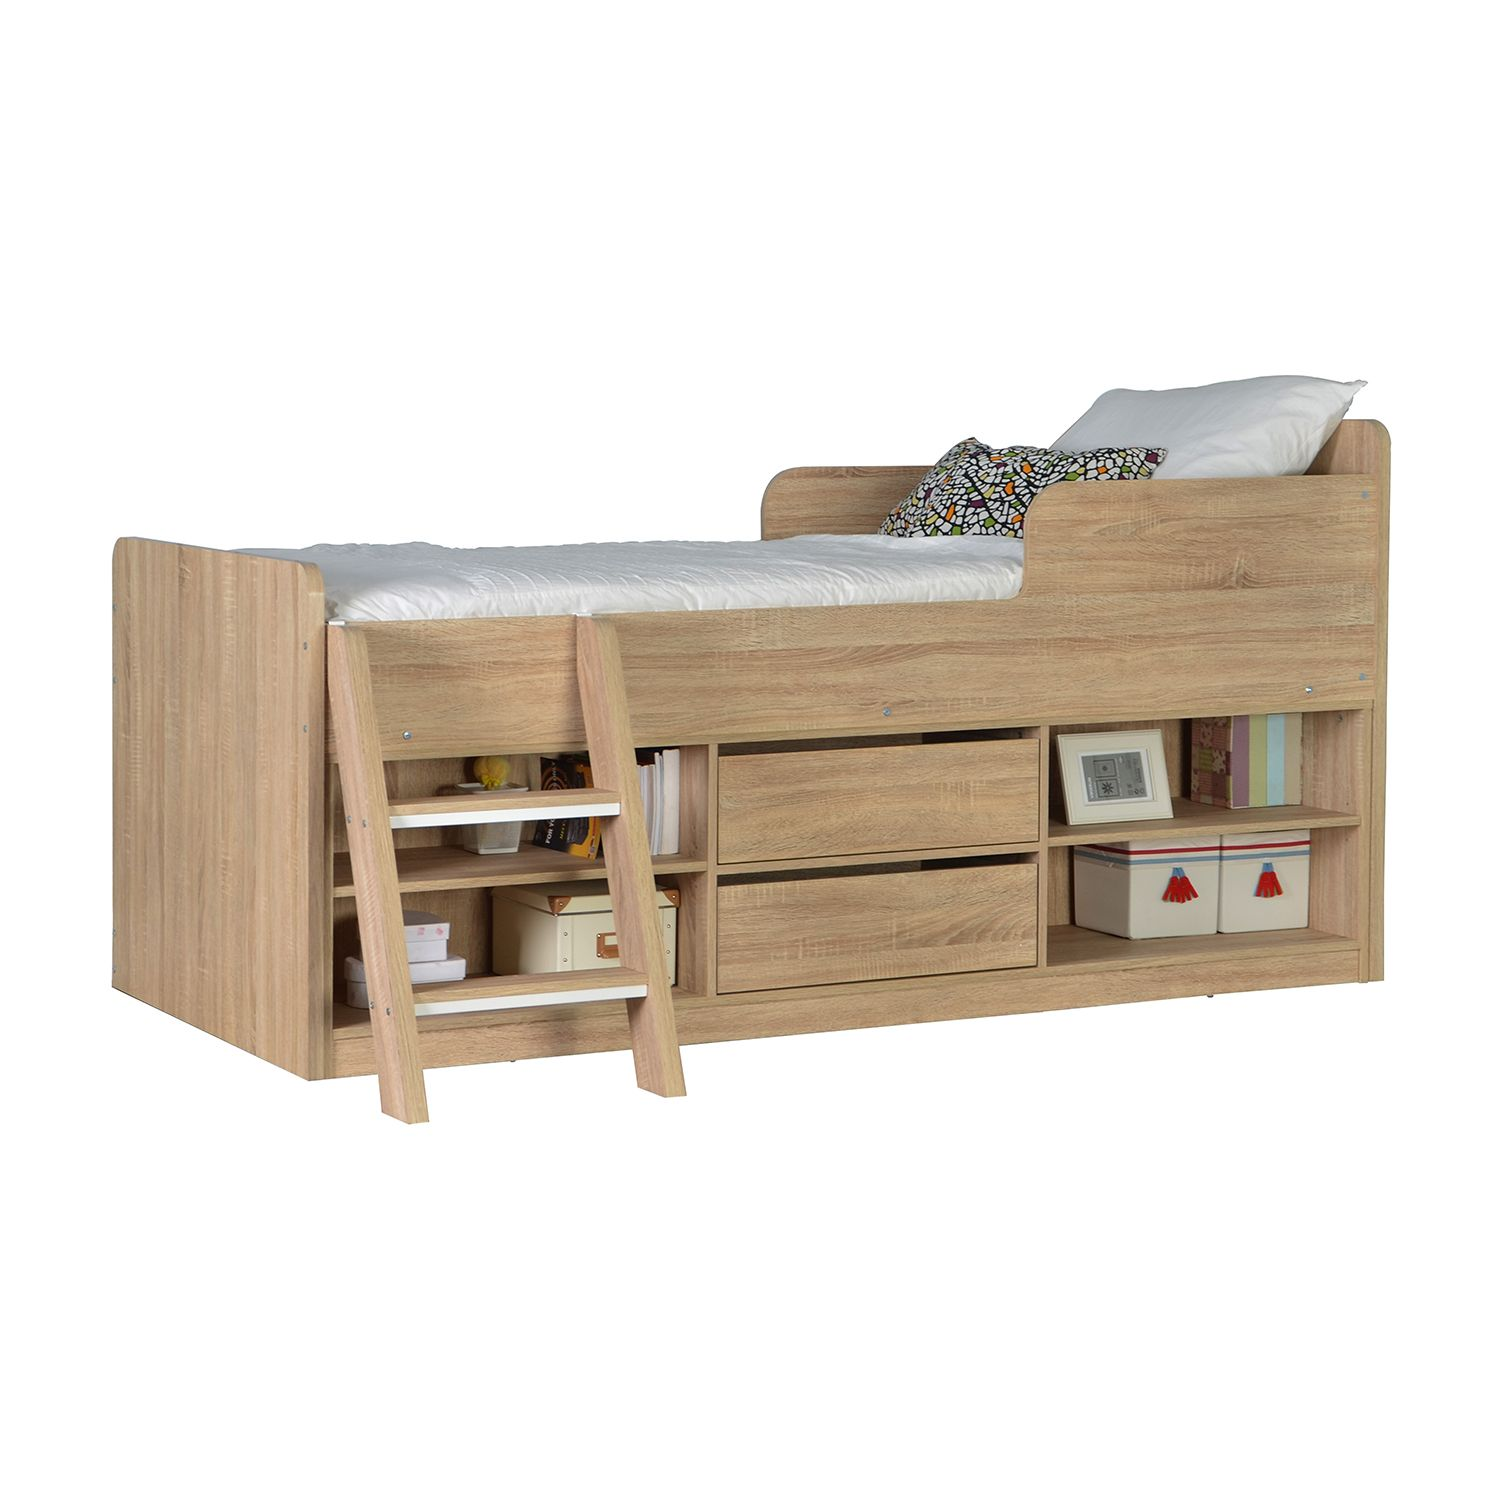 7a62543ac9 Felix Low Sleeper Bed – Next Day Delivery Felix Low Sleeper Bed from  WorldStores  Everything For The Home